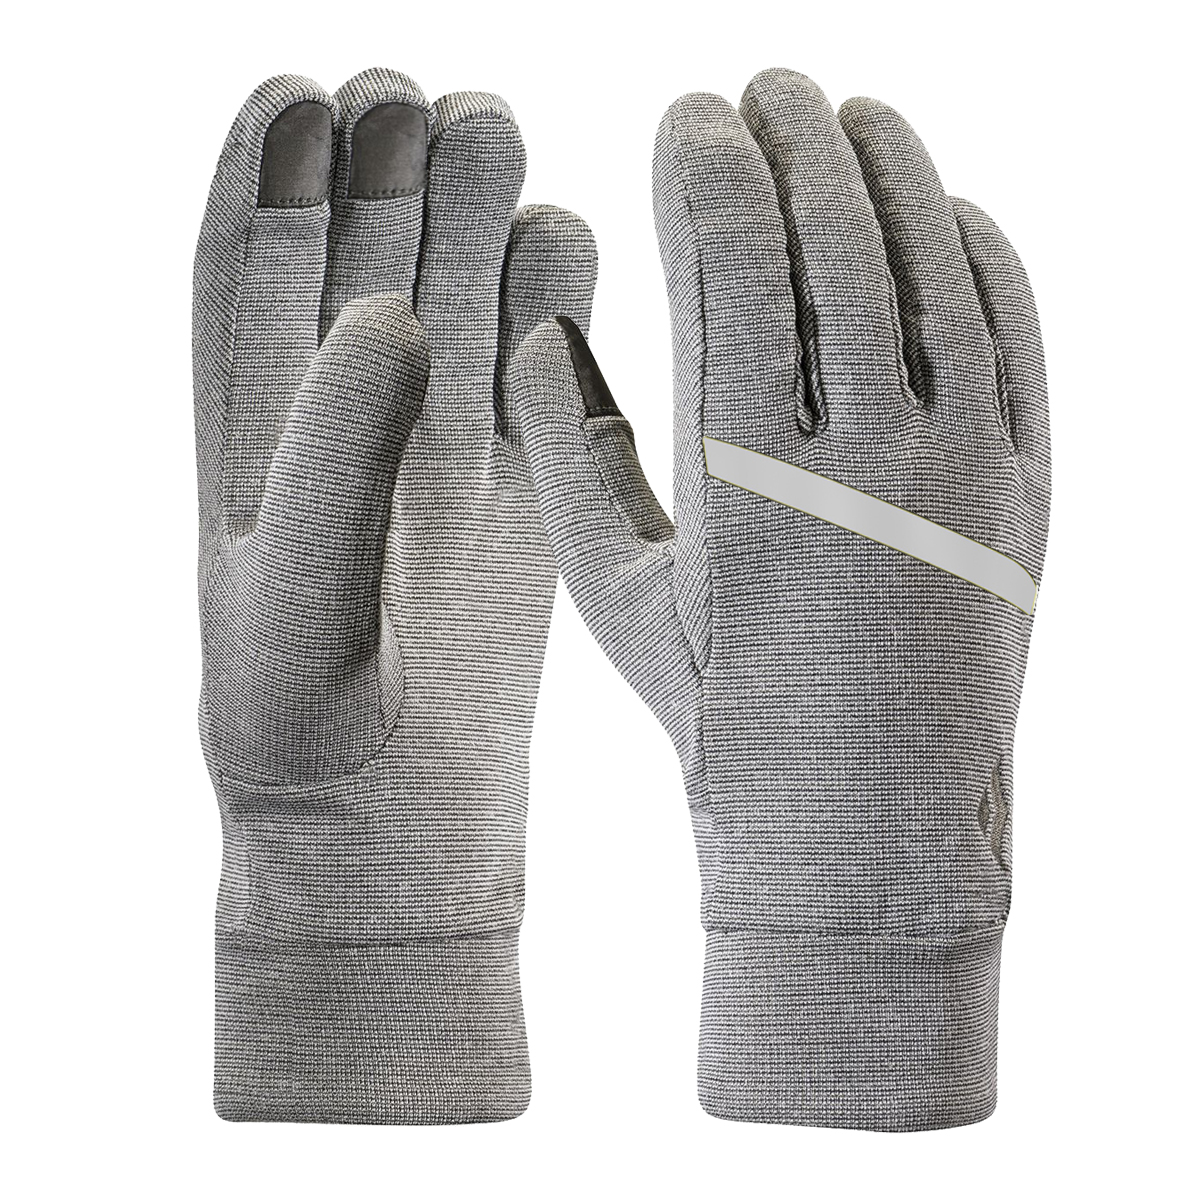 Mountain Merino Wool Glove/IWG-015